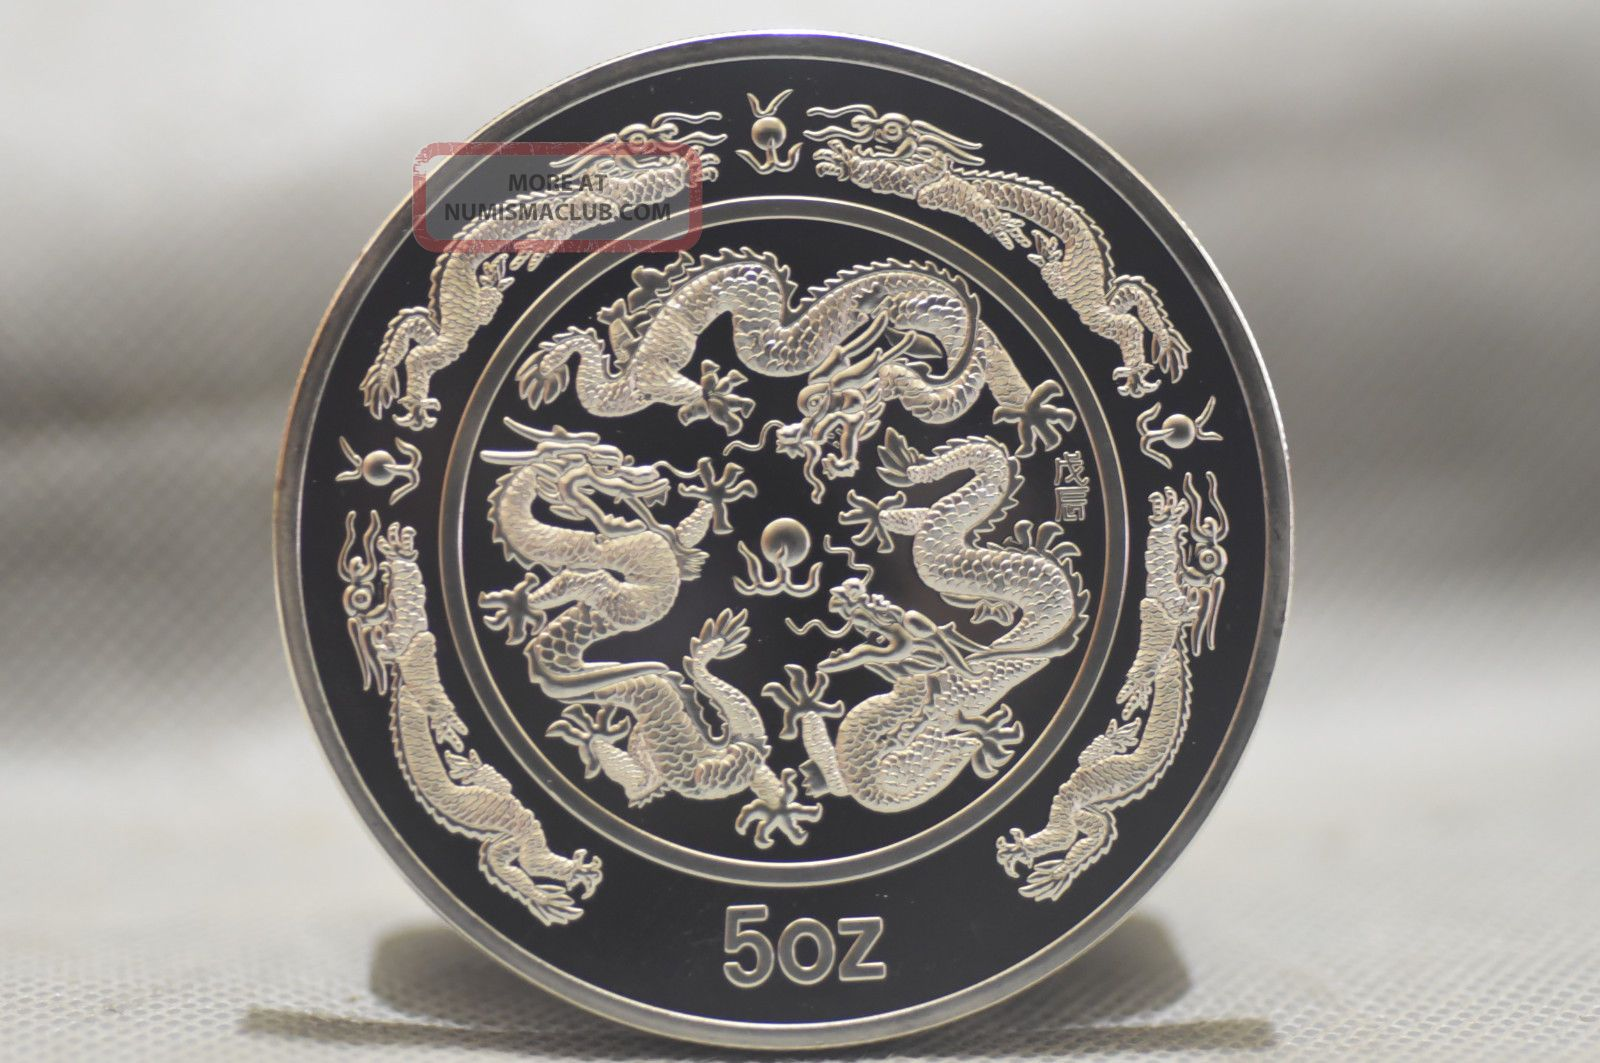 99 99 Chinese 1988 Zodiac 5oz Silver Coin Year Of The